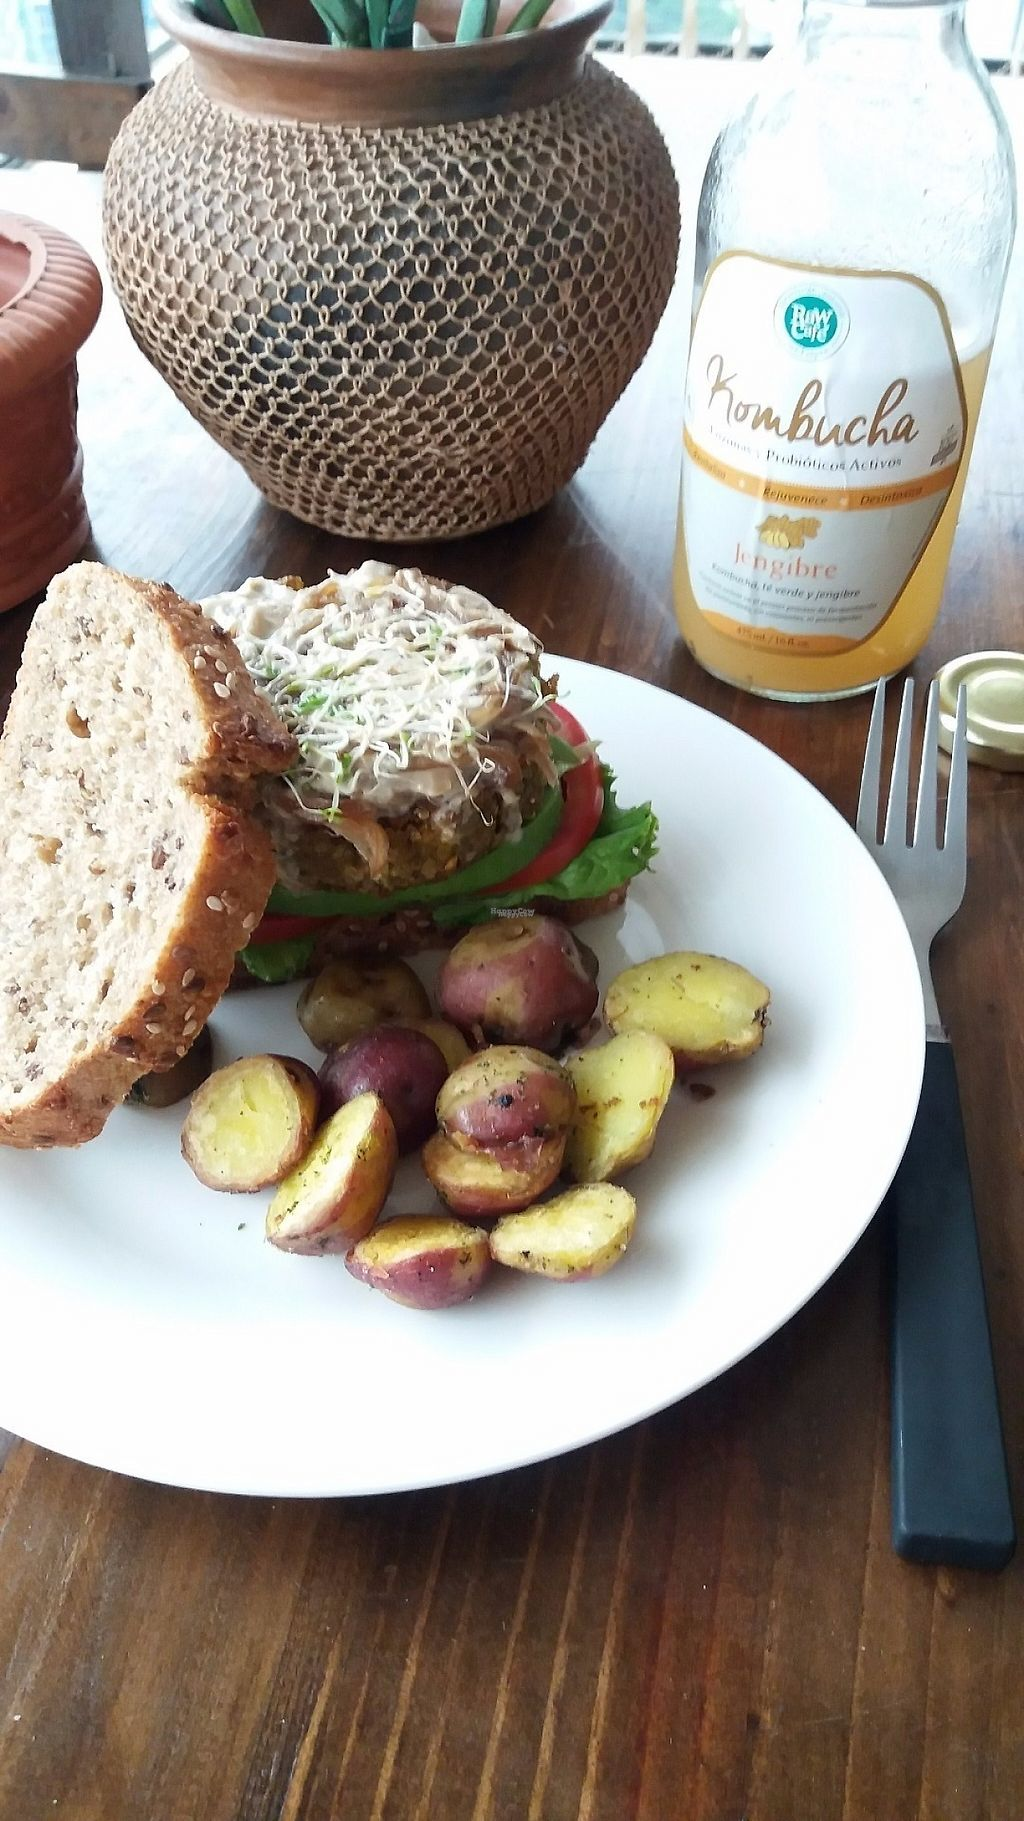 "Photo of Raw Cafe - Independencia  by <a href=""/members/profile/Arta"">Arta</a> <br/>Quinoa burger <br/> March 20, 2017  - <a href='/contact/abuse/image/41640/238895'>Report</a>"